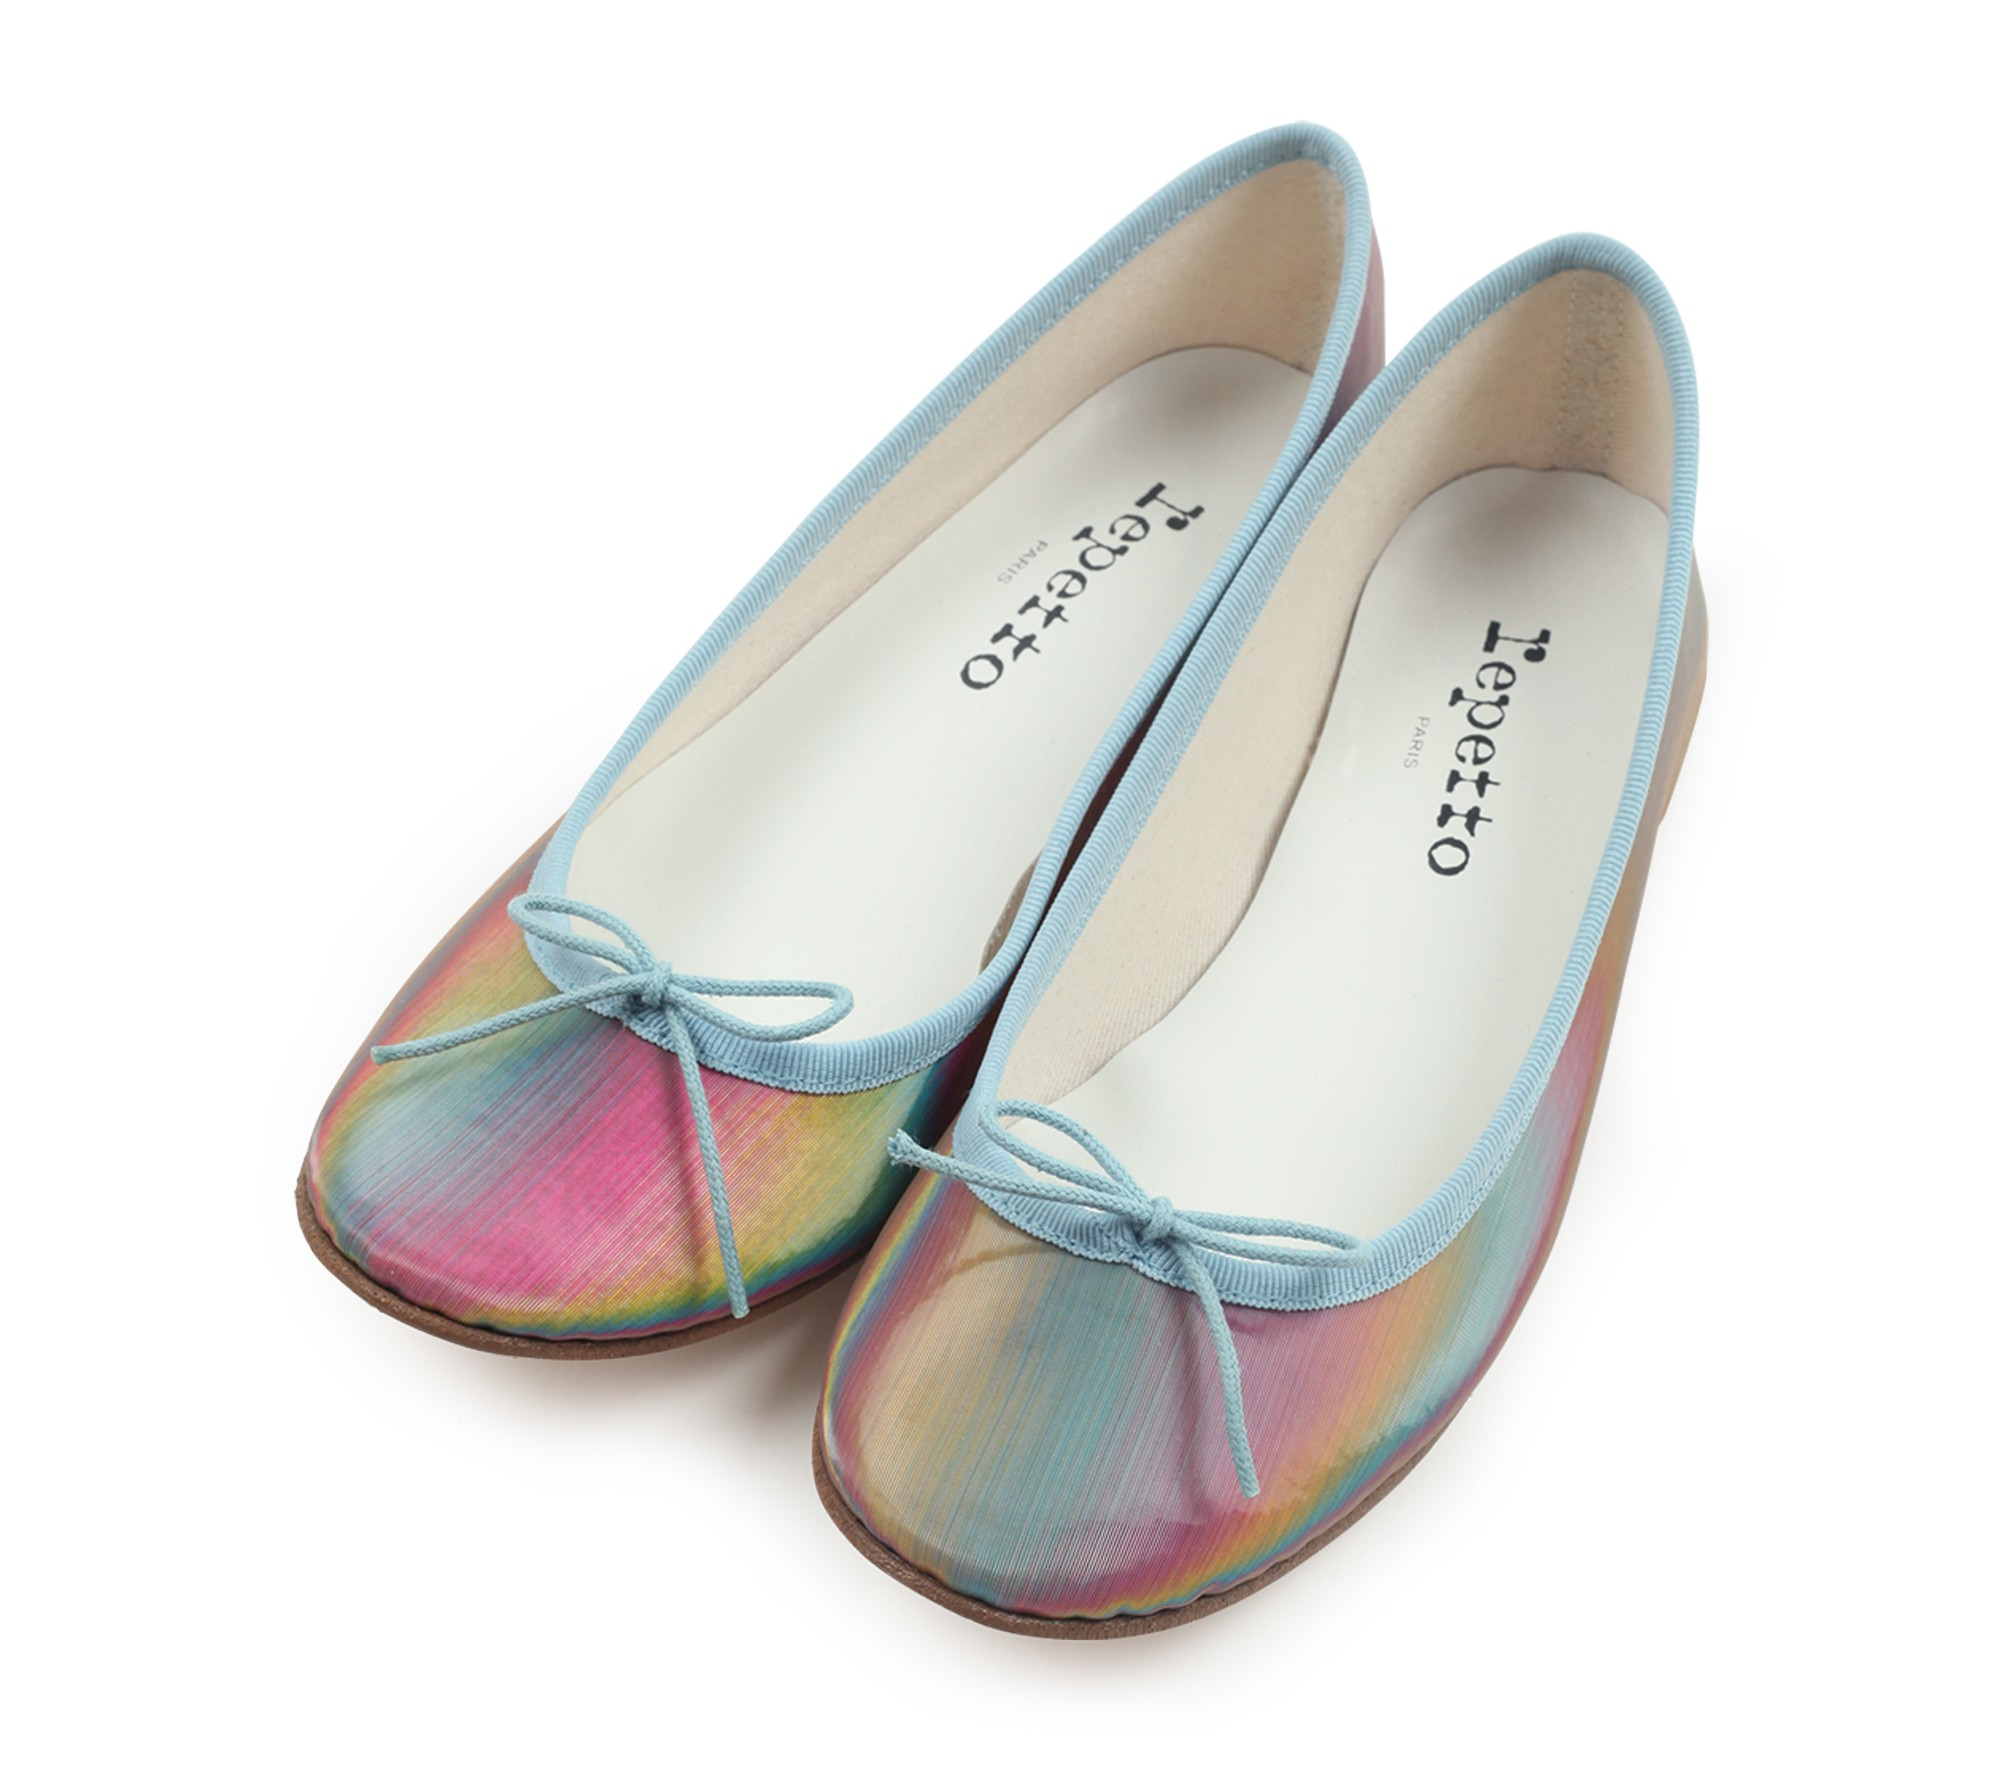 Ballerines REPETTO cuir rose 37